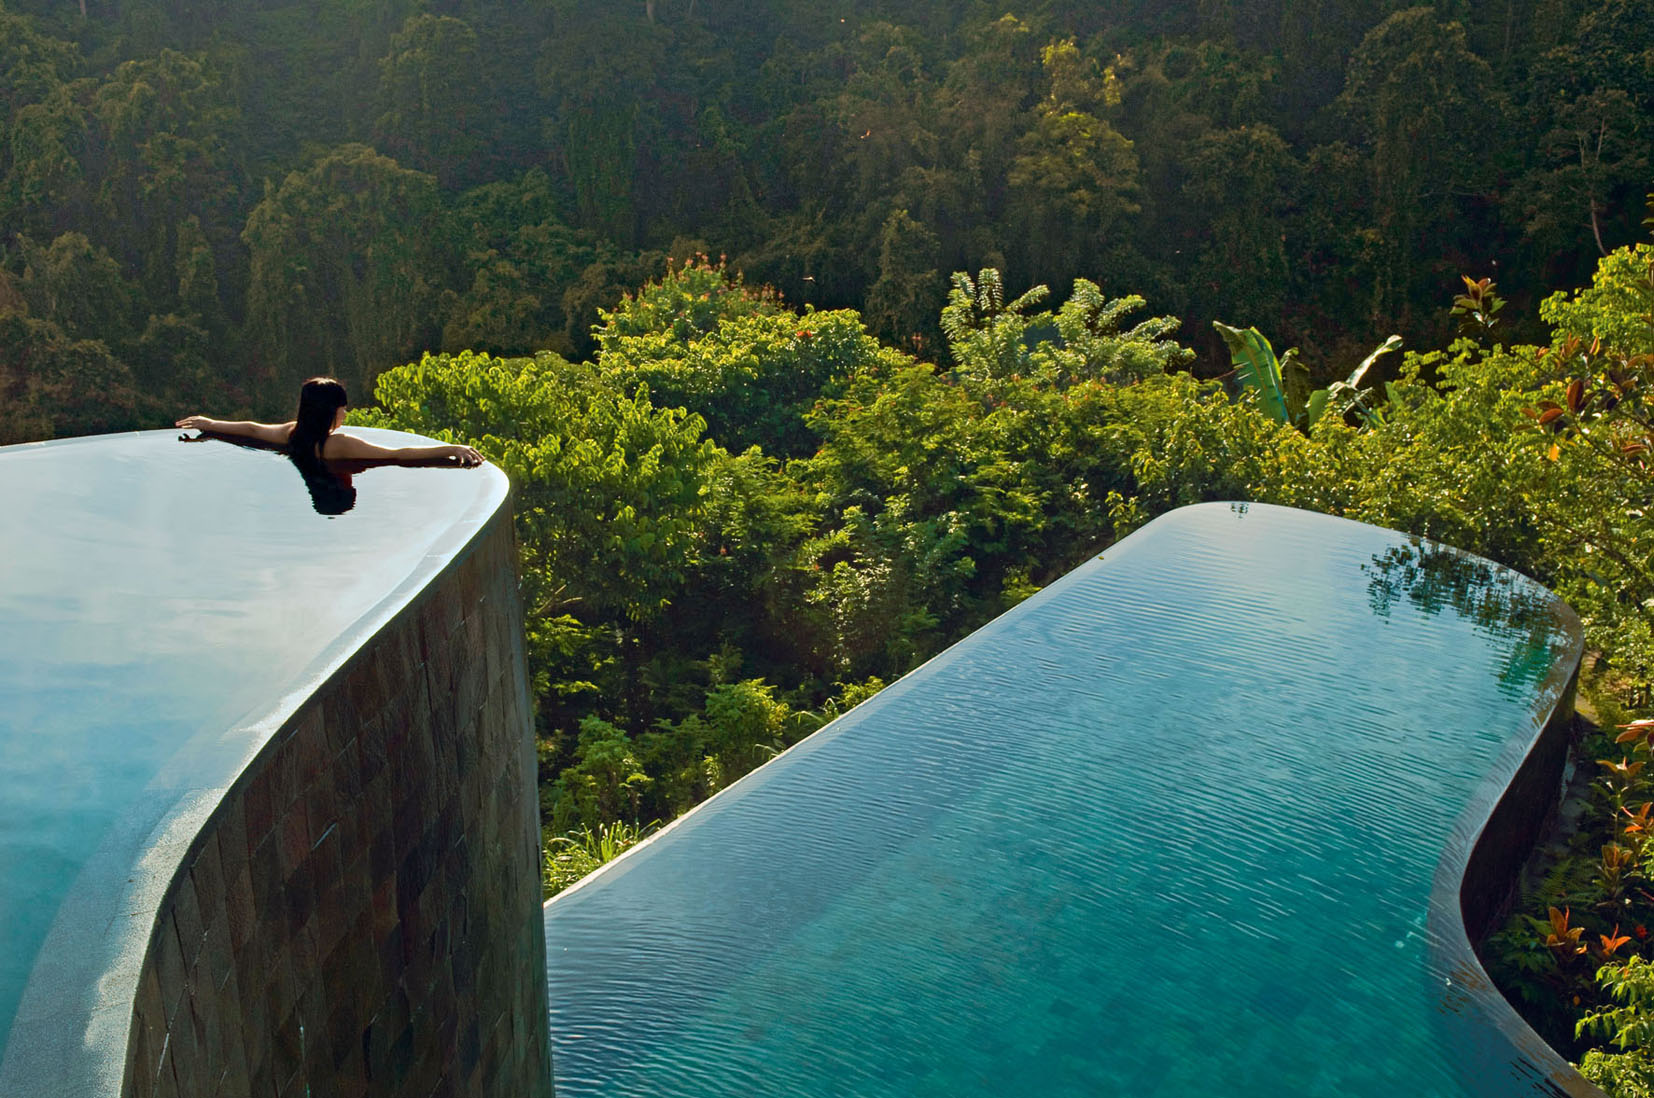 From the pool, you have an incredible view of the rainforest